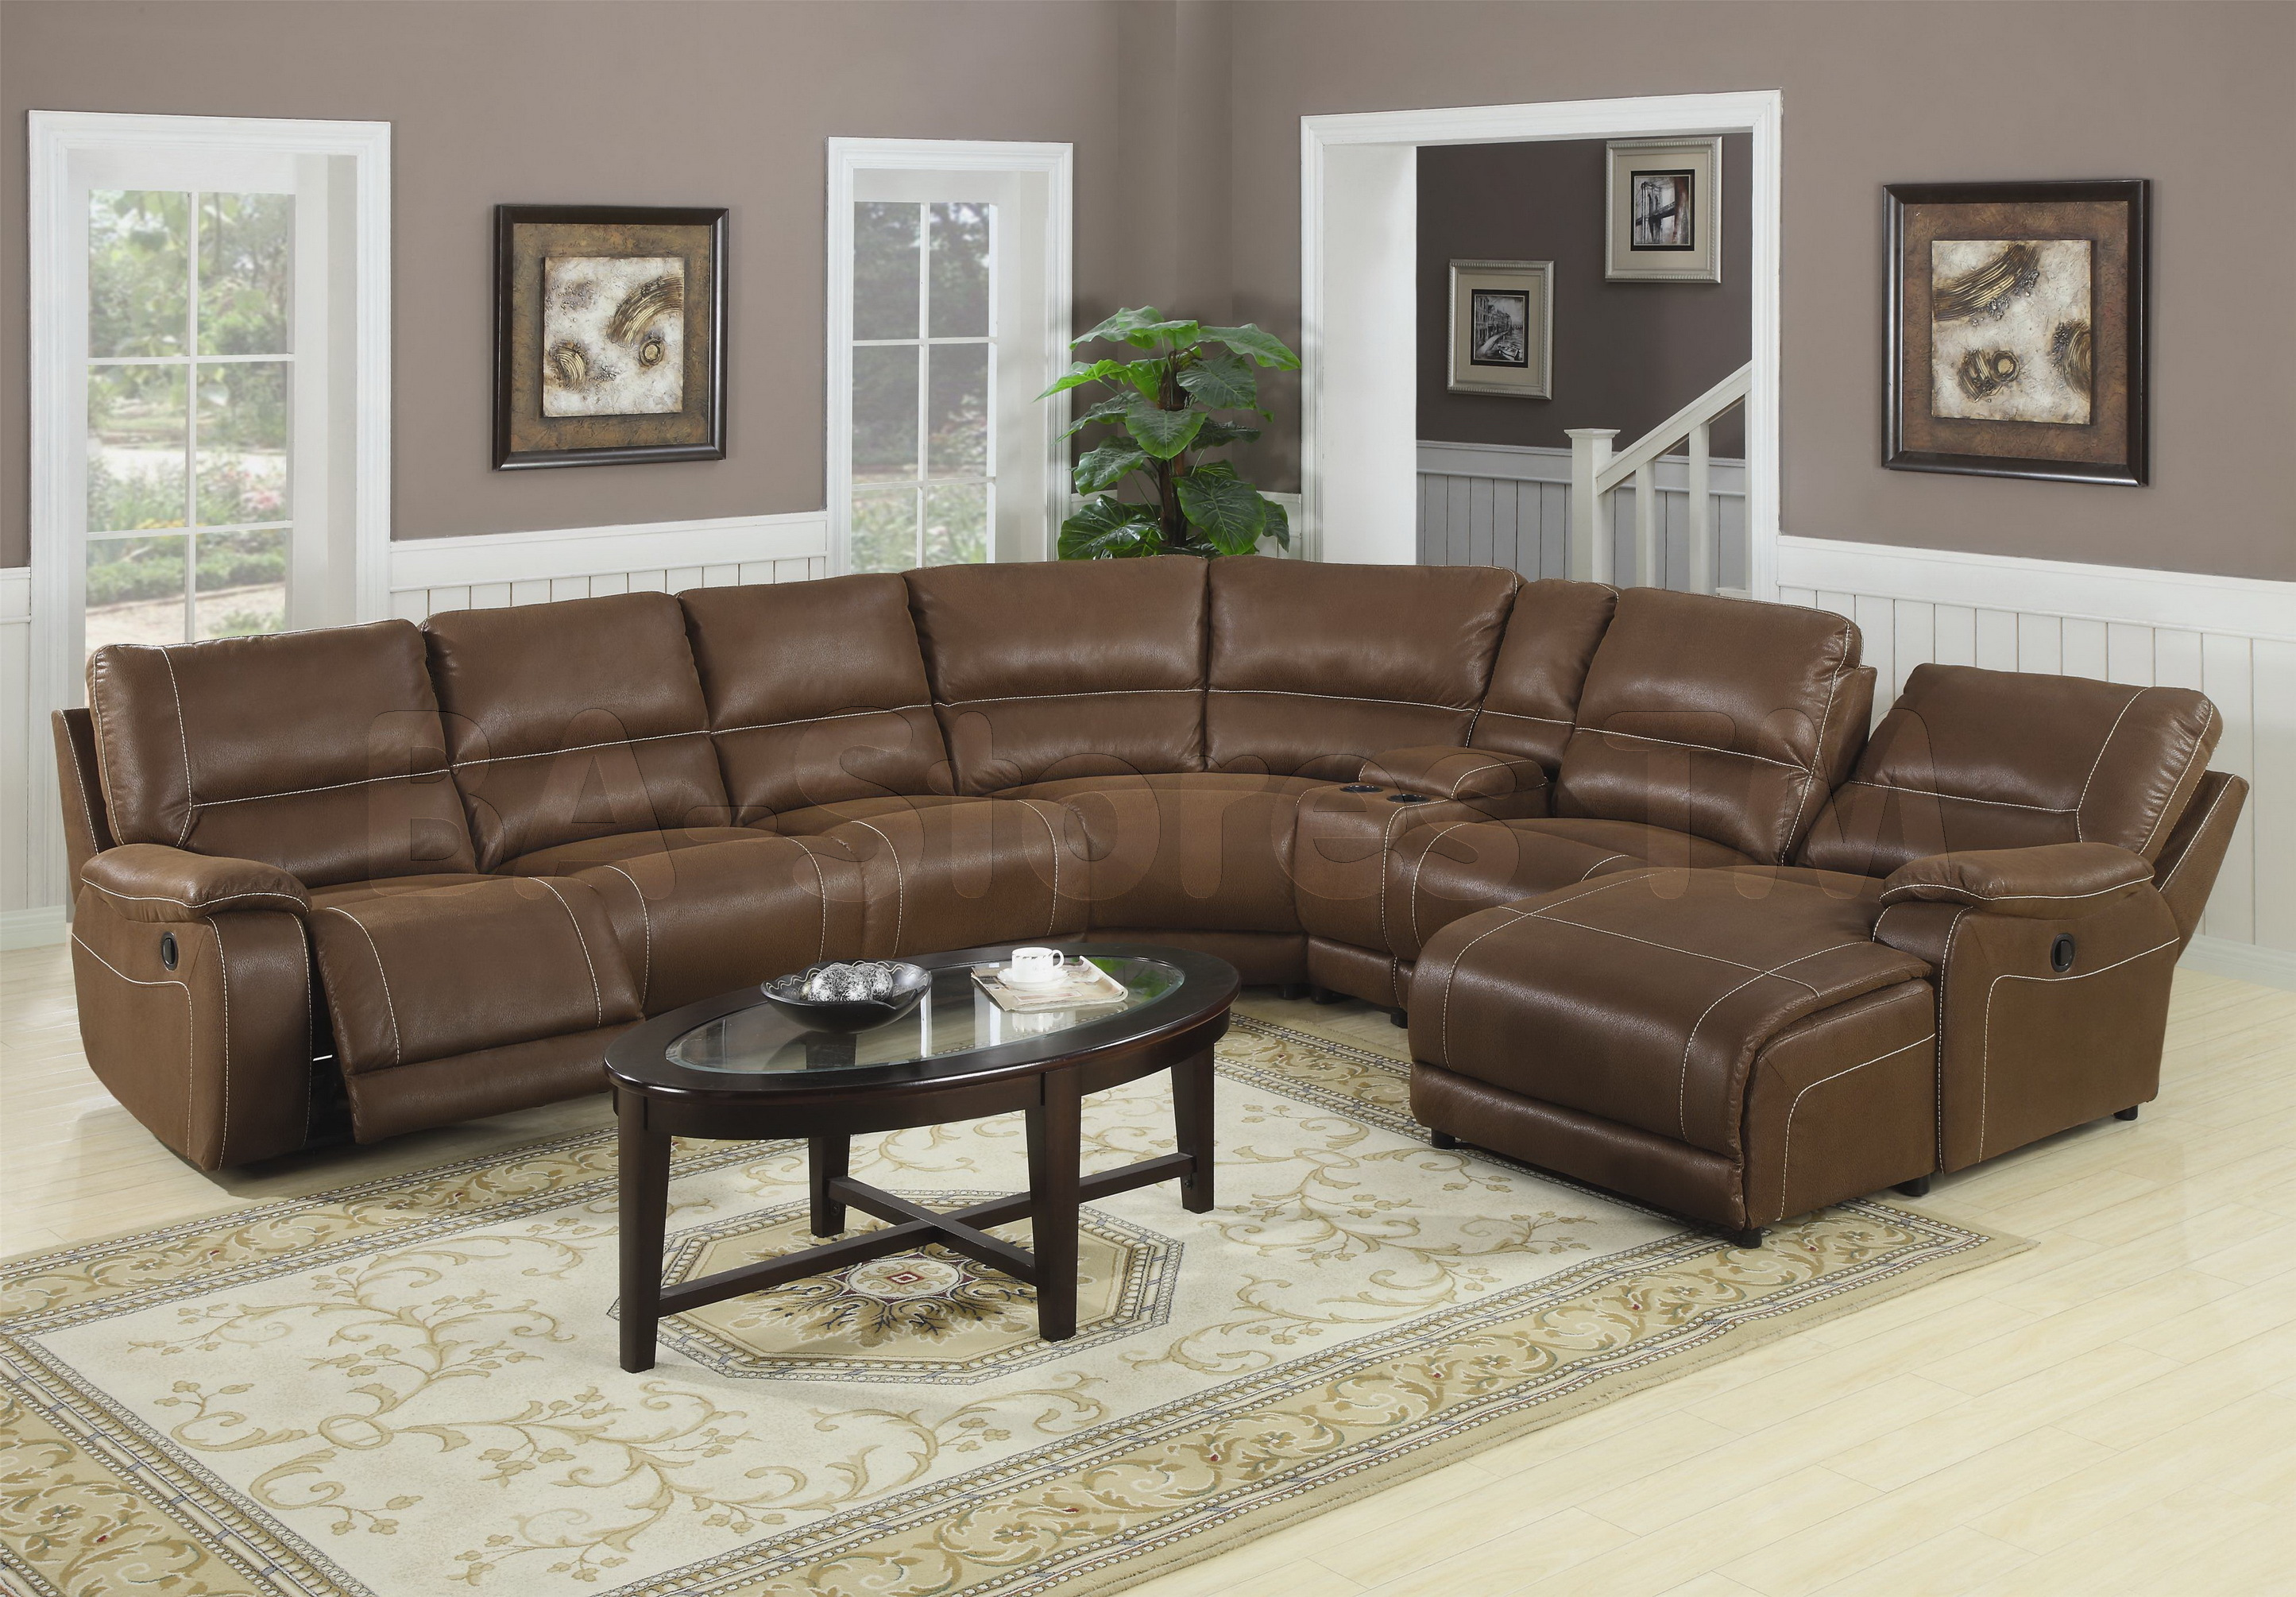 Large Sectional Sofas | Tufted Sectional | Chaise Couch